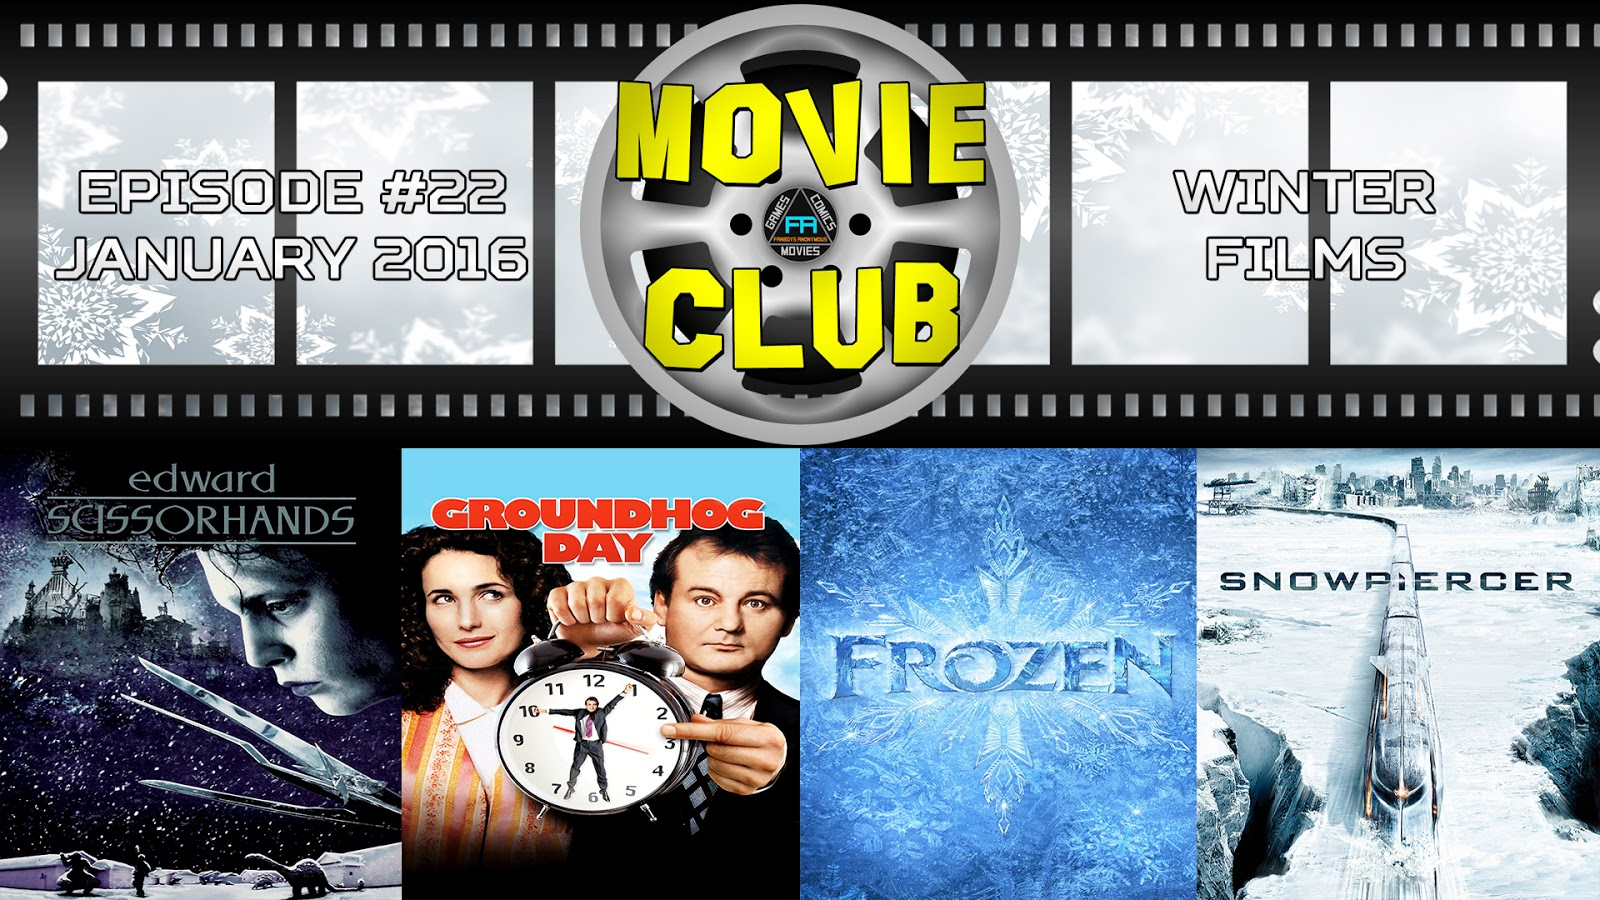 Edward Scissorhands, Groundhog Day, Frozen, Snowpiercer